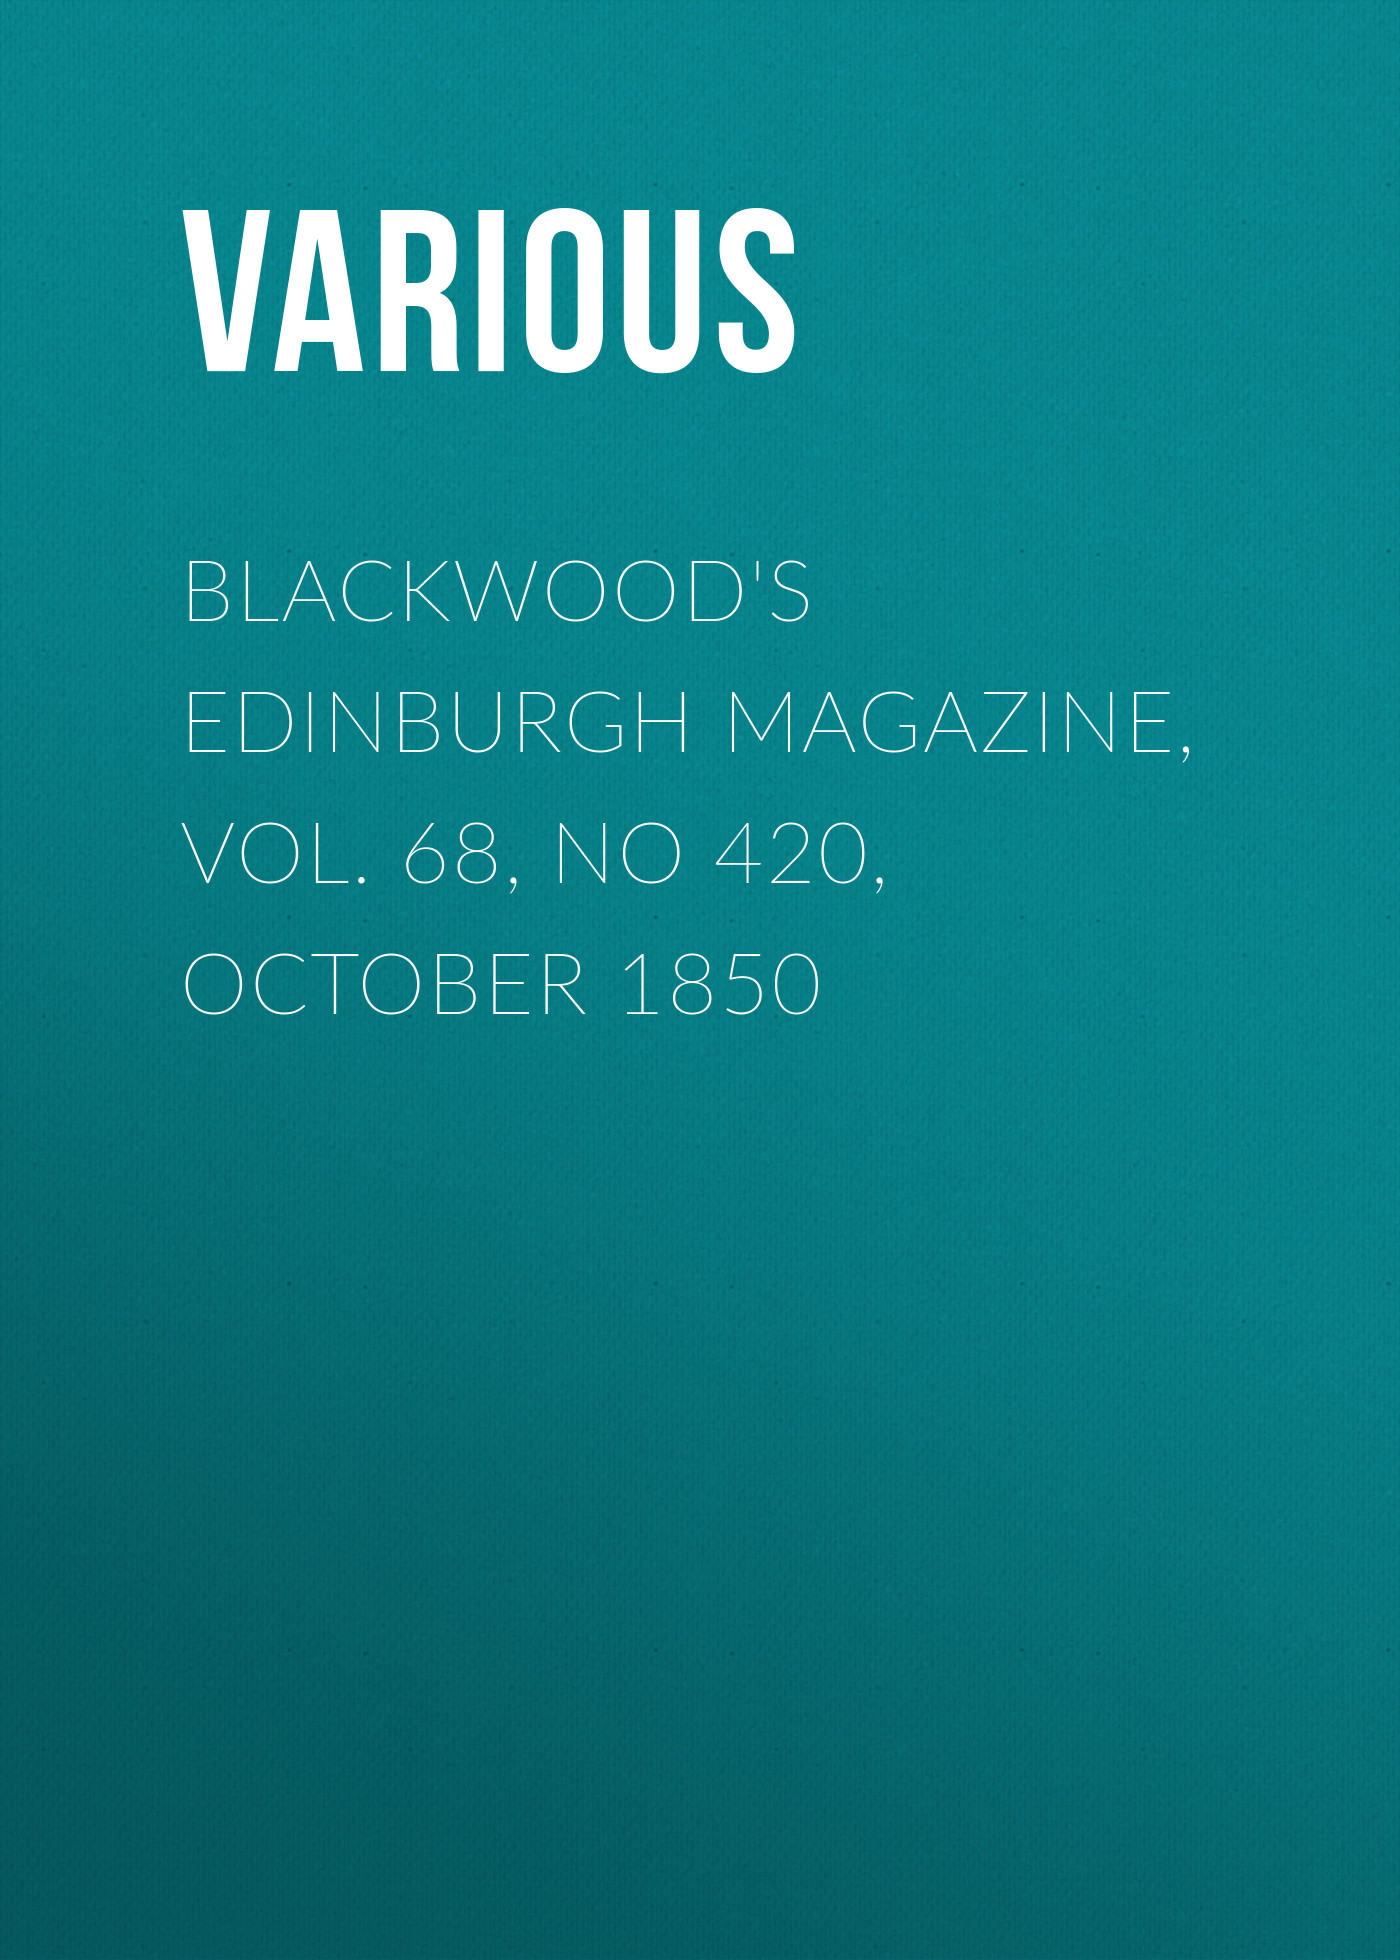 Various Blackwood's Edinburgh Magazine, Vol. 68, No 420, October 1850 various blackwood s edinburgh magazine volume 67 no 411 january 1850